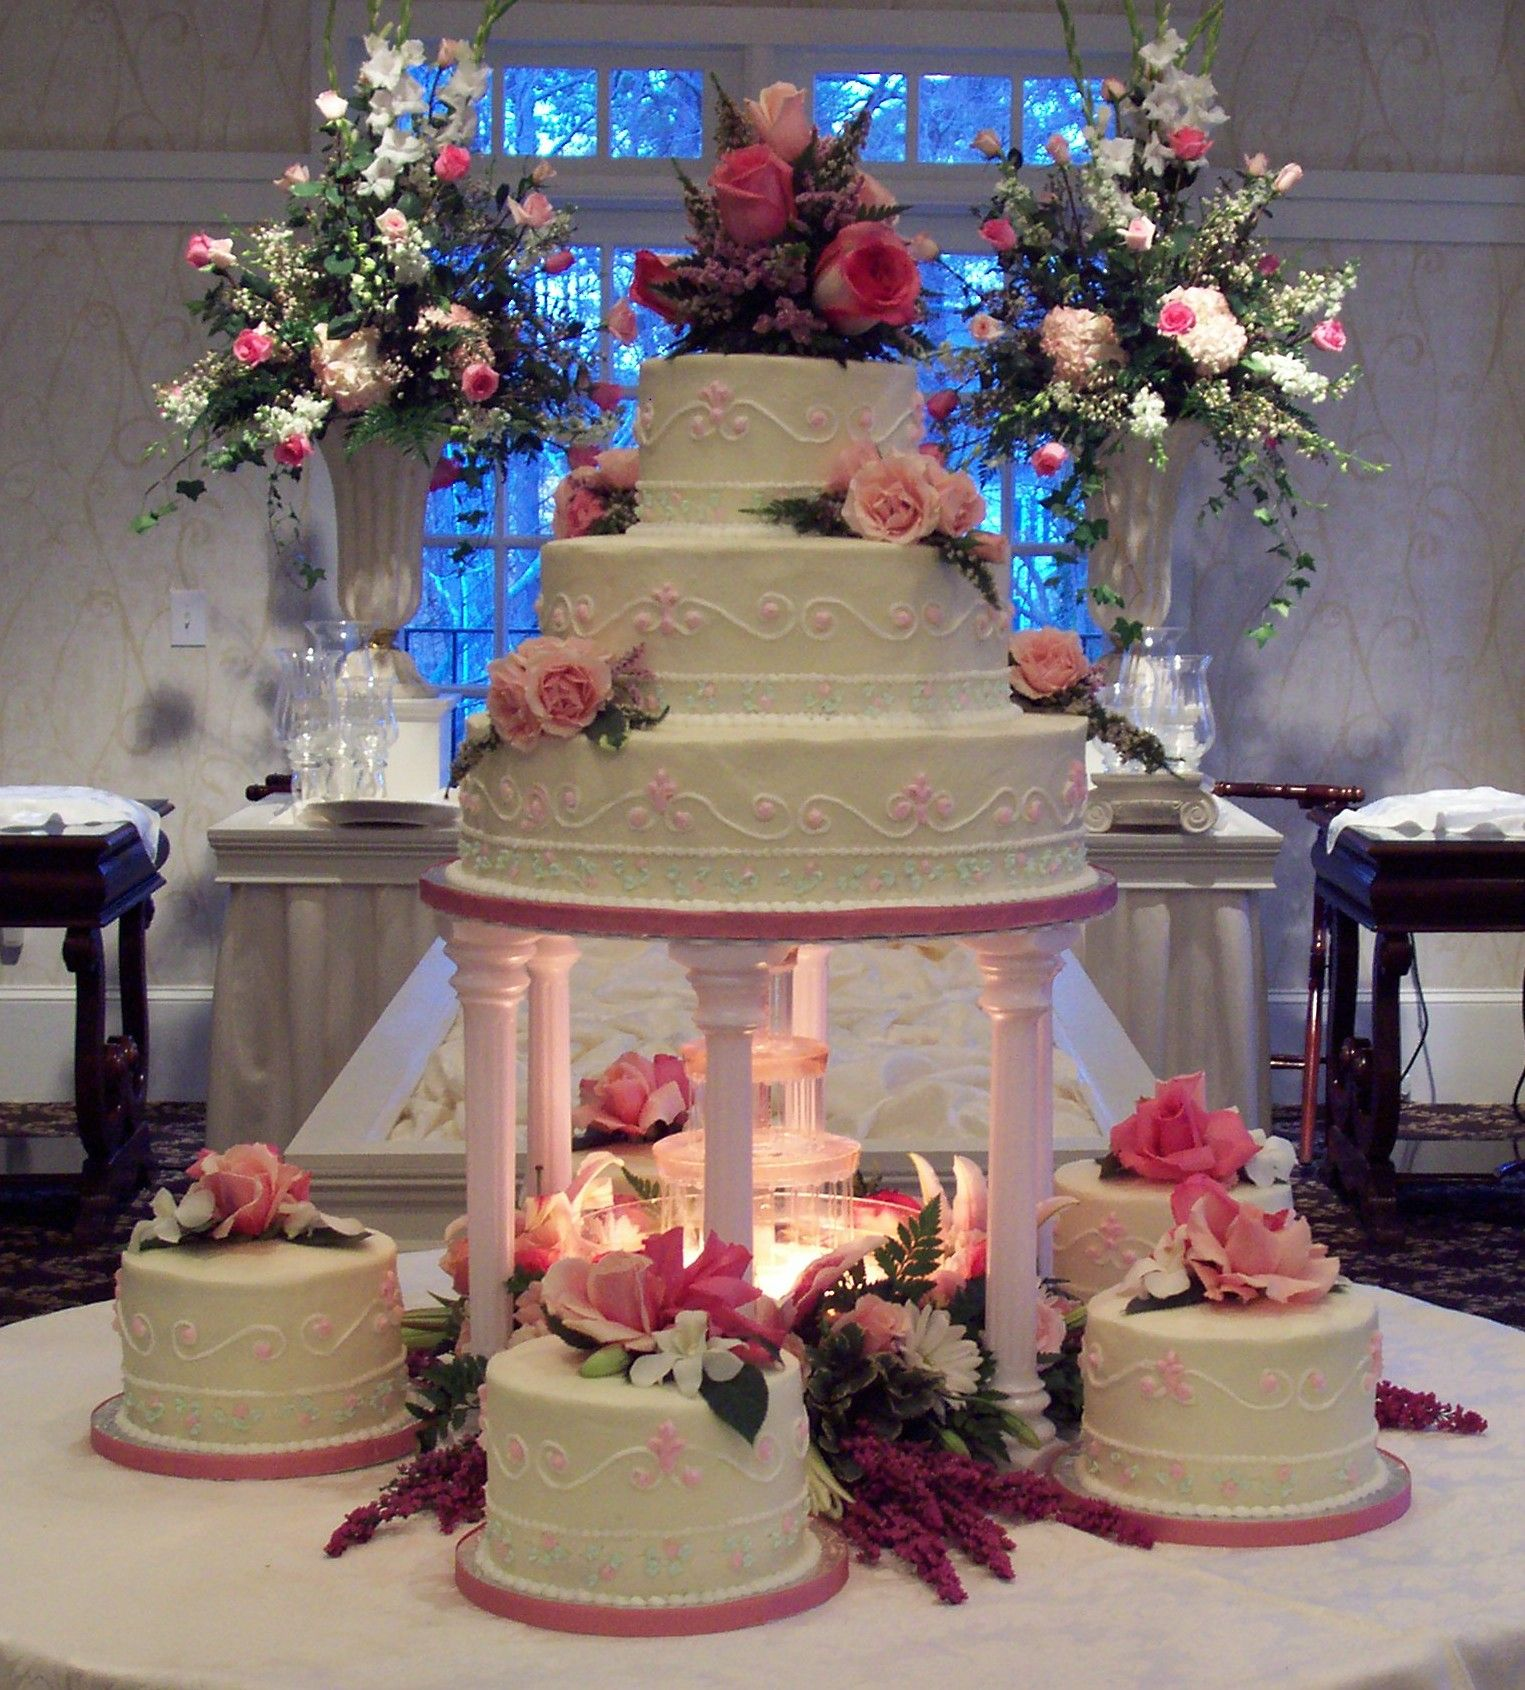 Wedding Cake Designs With Fountain